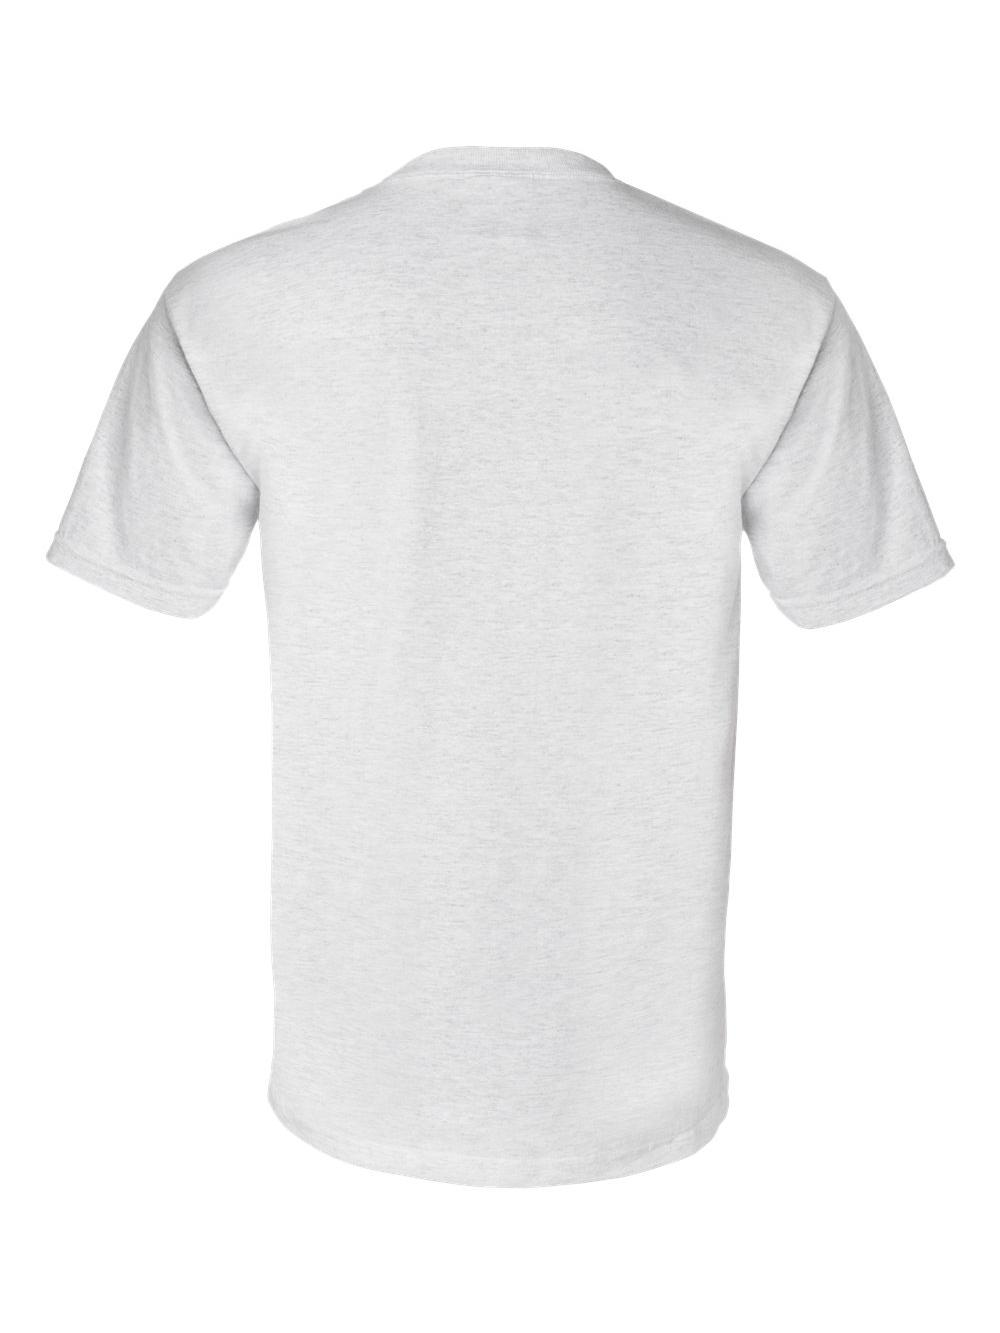 Bayside-Union-Made-Short-Sleeve-T-Shirt-with-a-Pocket-3015 thumbnail 4